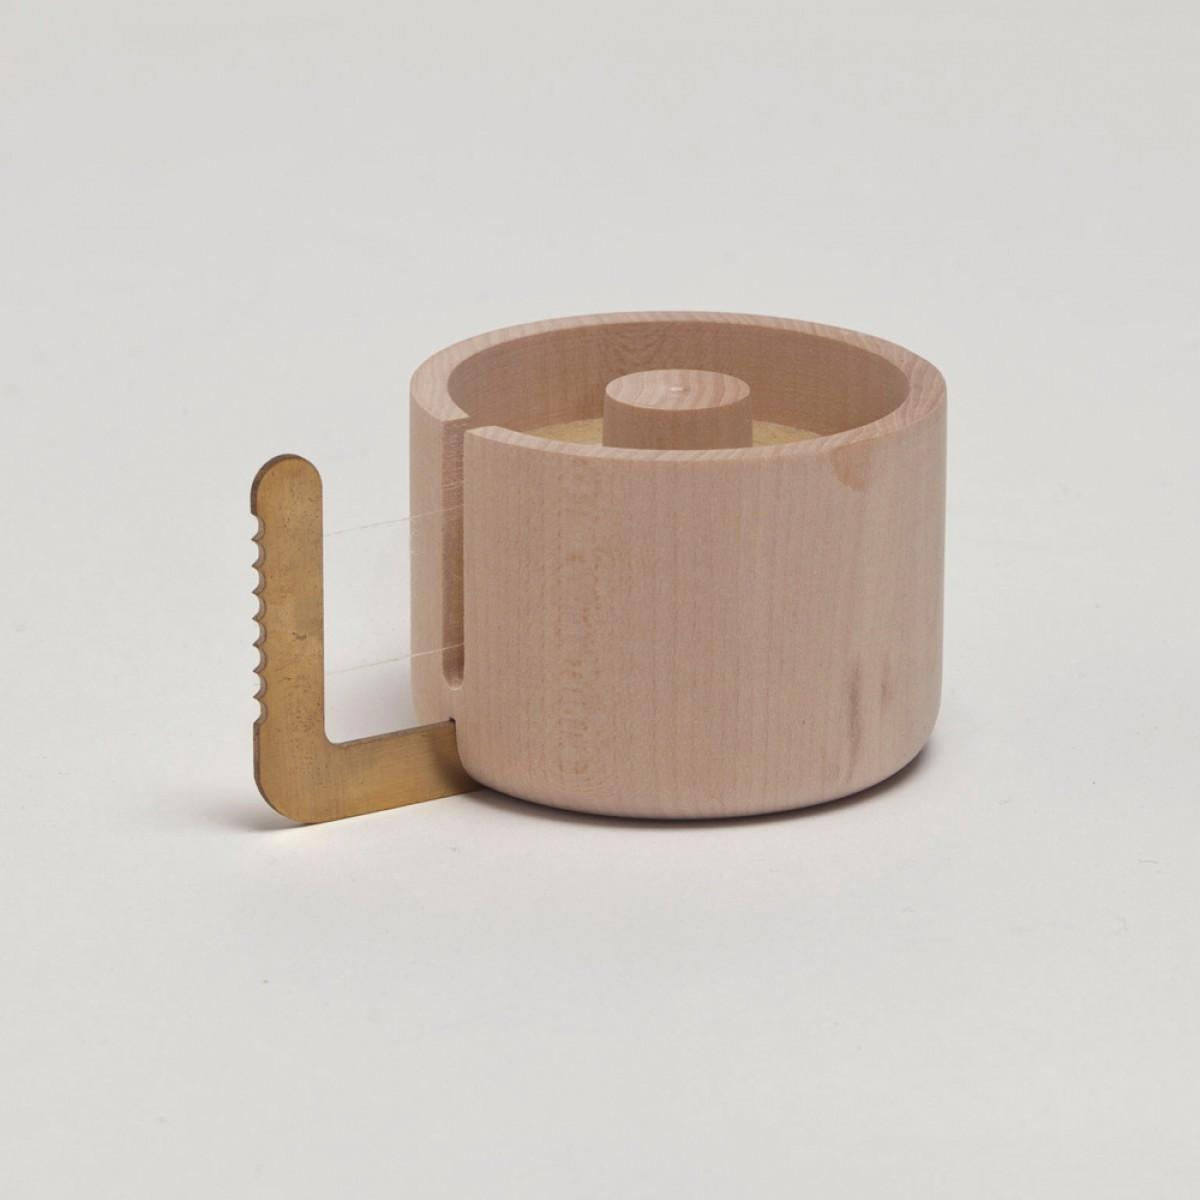 Series Desk Accessories Tape Dispenser